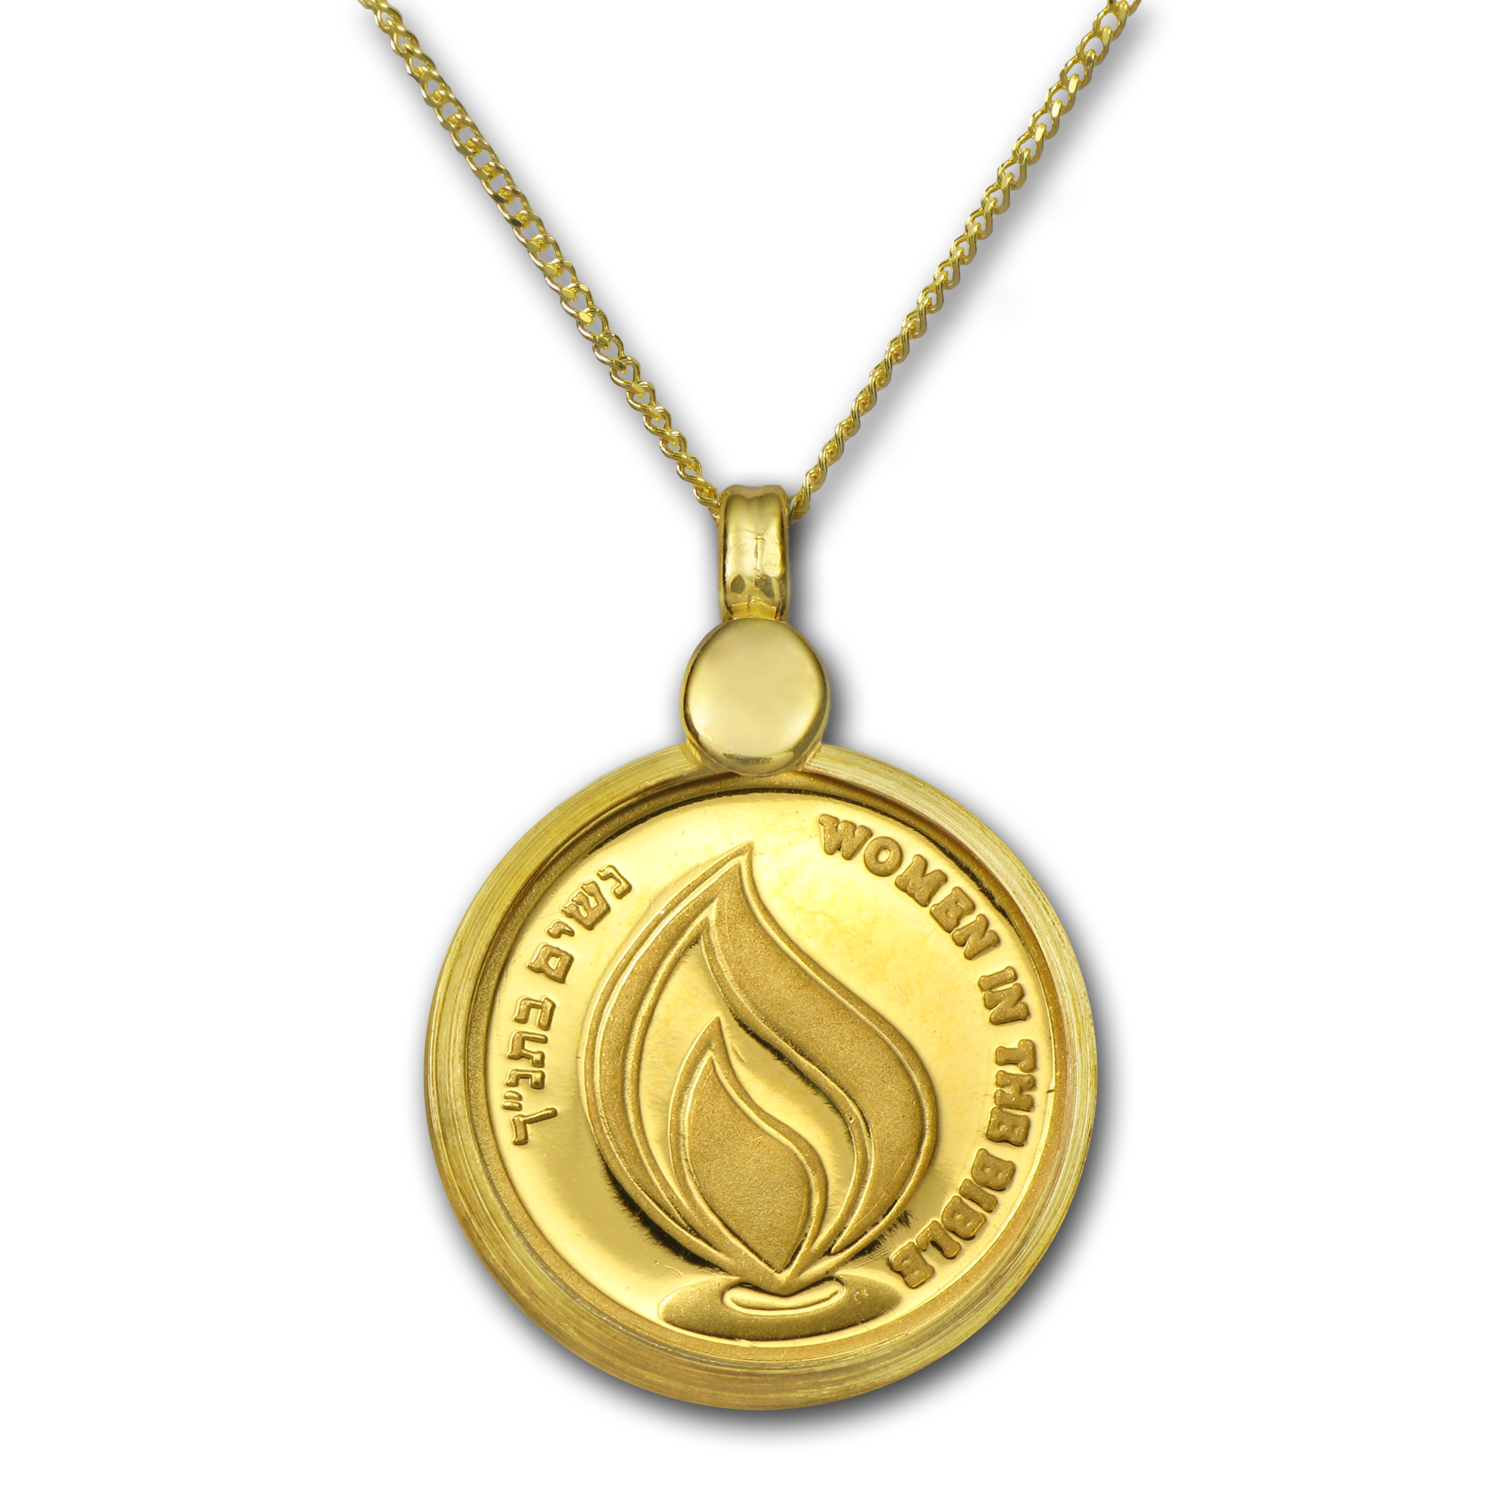 Israel Deborah Gold Medal Gold Necklace - AGW 0.0729 oz